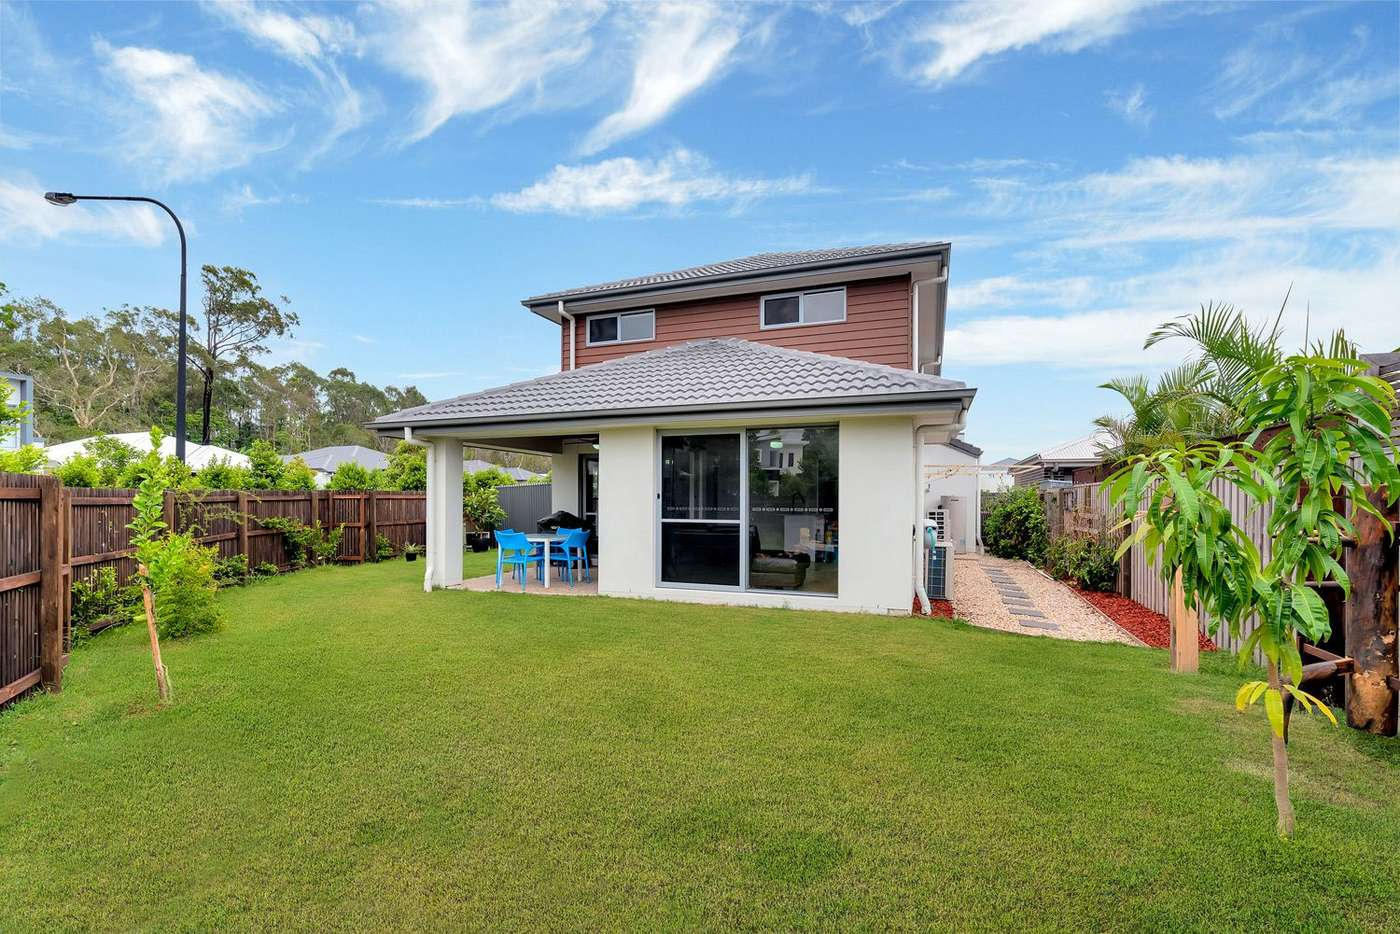 Main view of Homely house listing, 1 Towarri Street, Pimpama QLD 4209